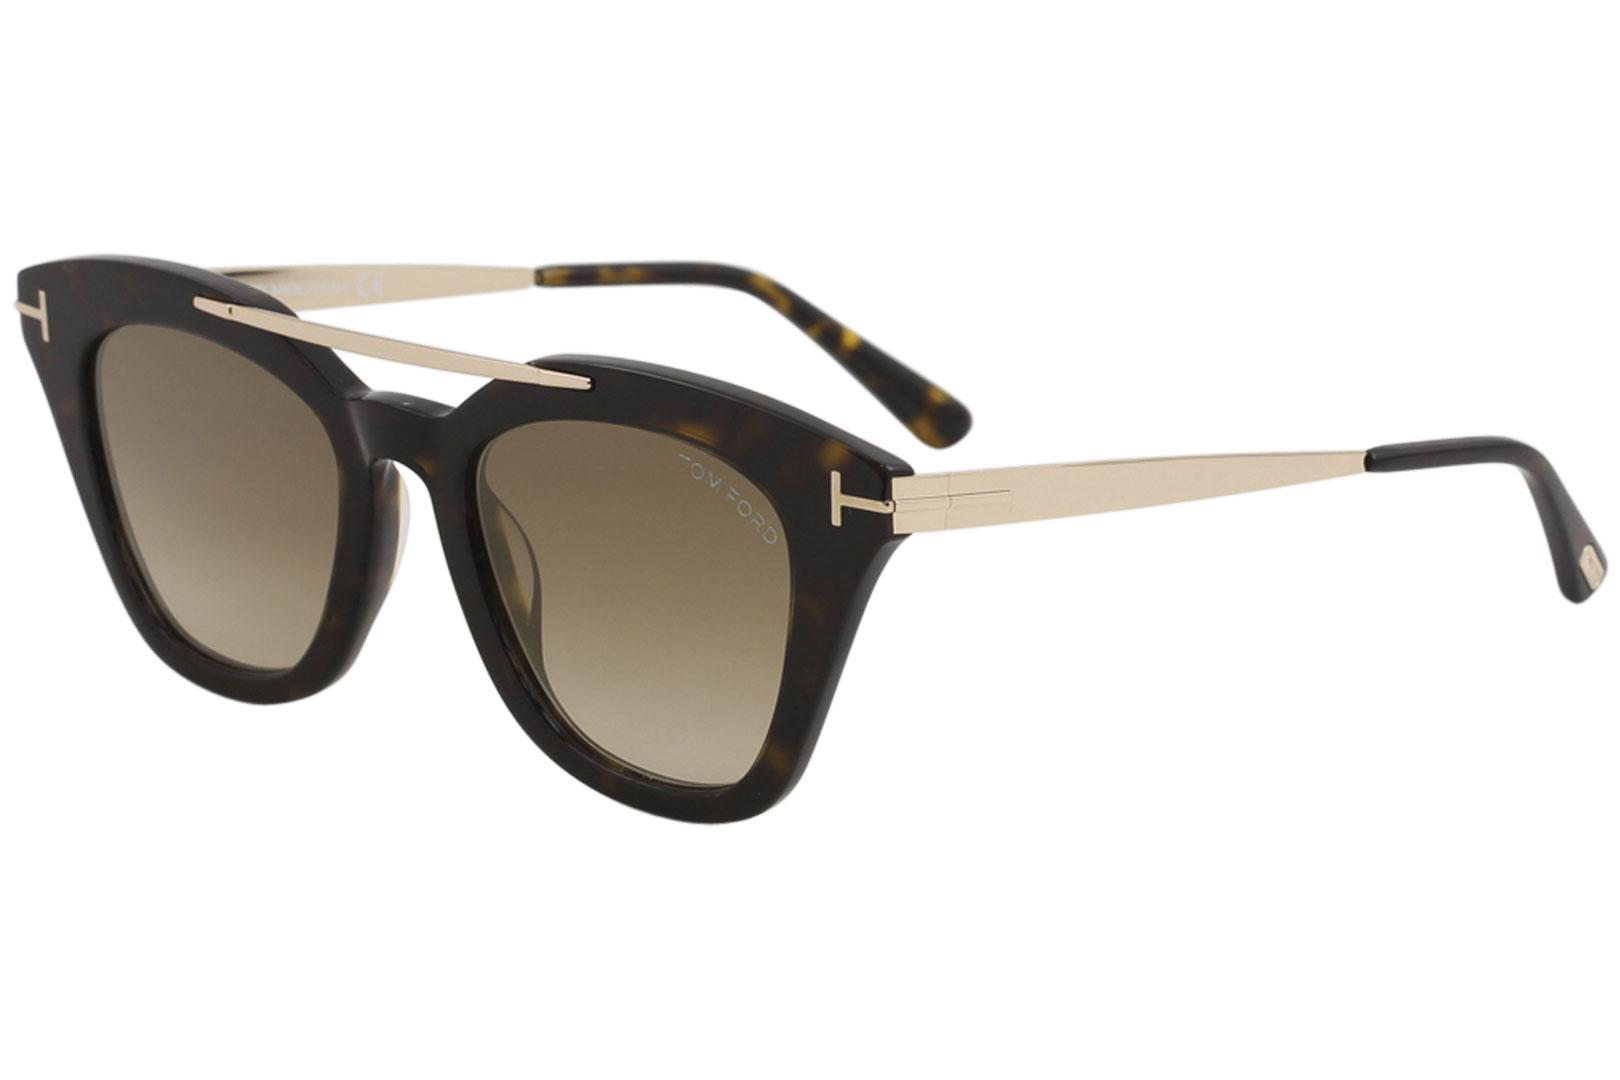 730aa2c2e0a Tom Ford Women s Anna-02 TF575 TF 575 Fashion Cat Eye Sunglasses. Price    0.00